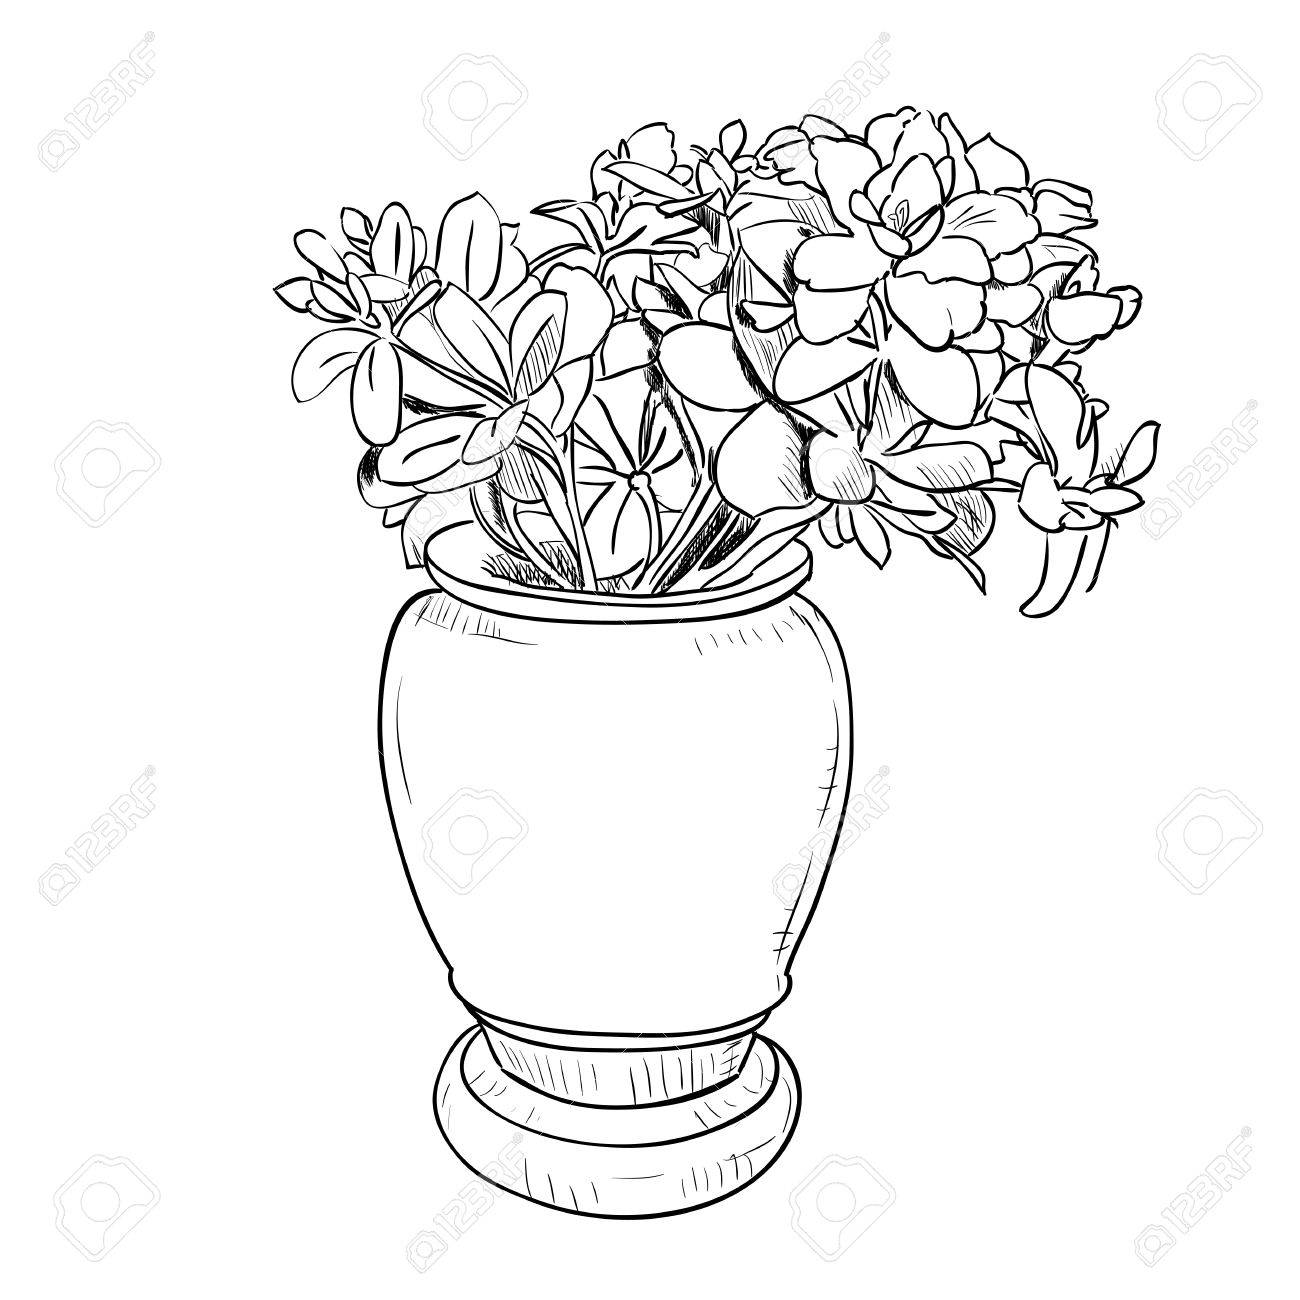 Vector drawing sketch of vase with flowers hand draw illustration vector drawing sketch of vase with flowers hand draw illustration stock vector 43440137 reviewsmspy